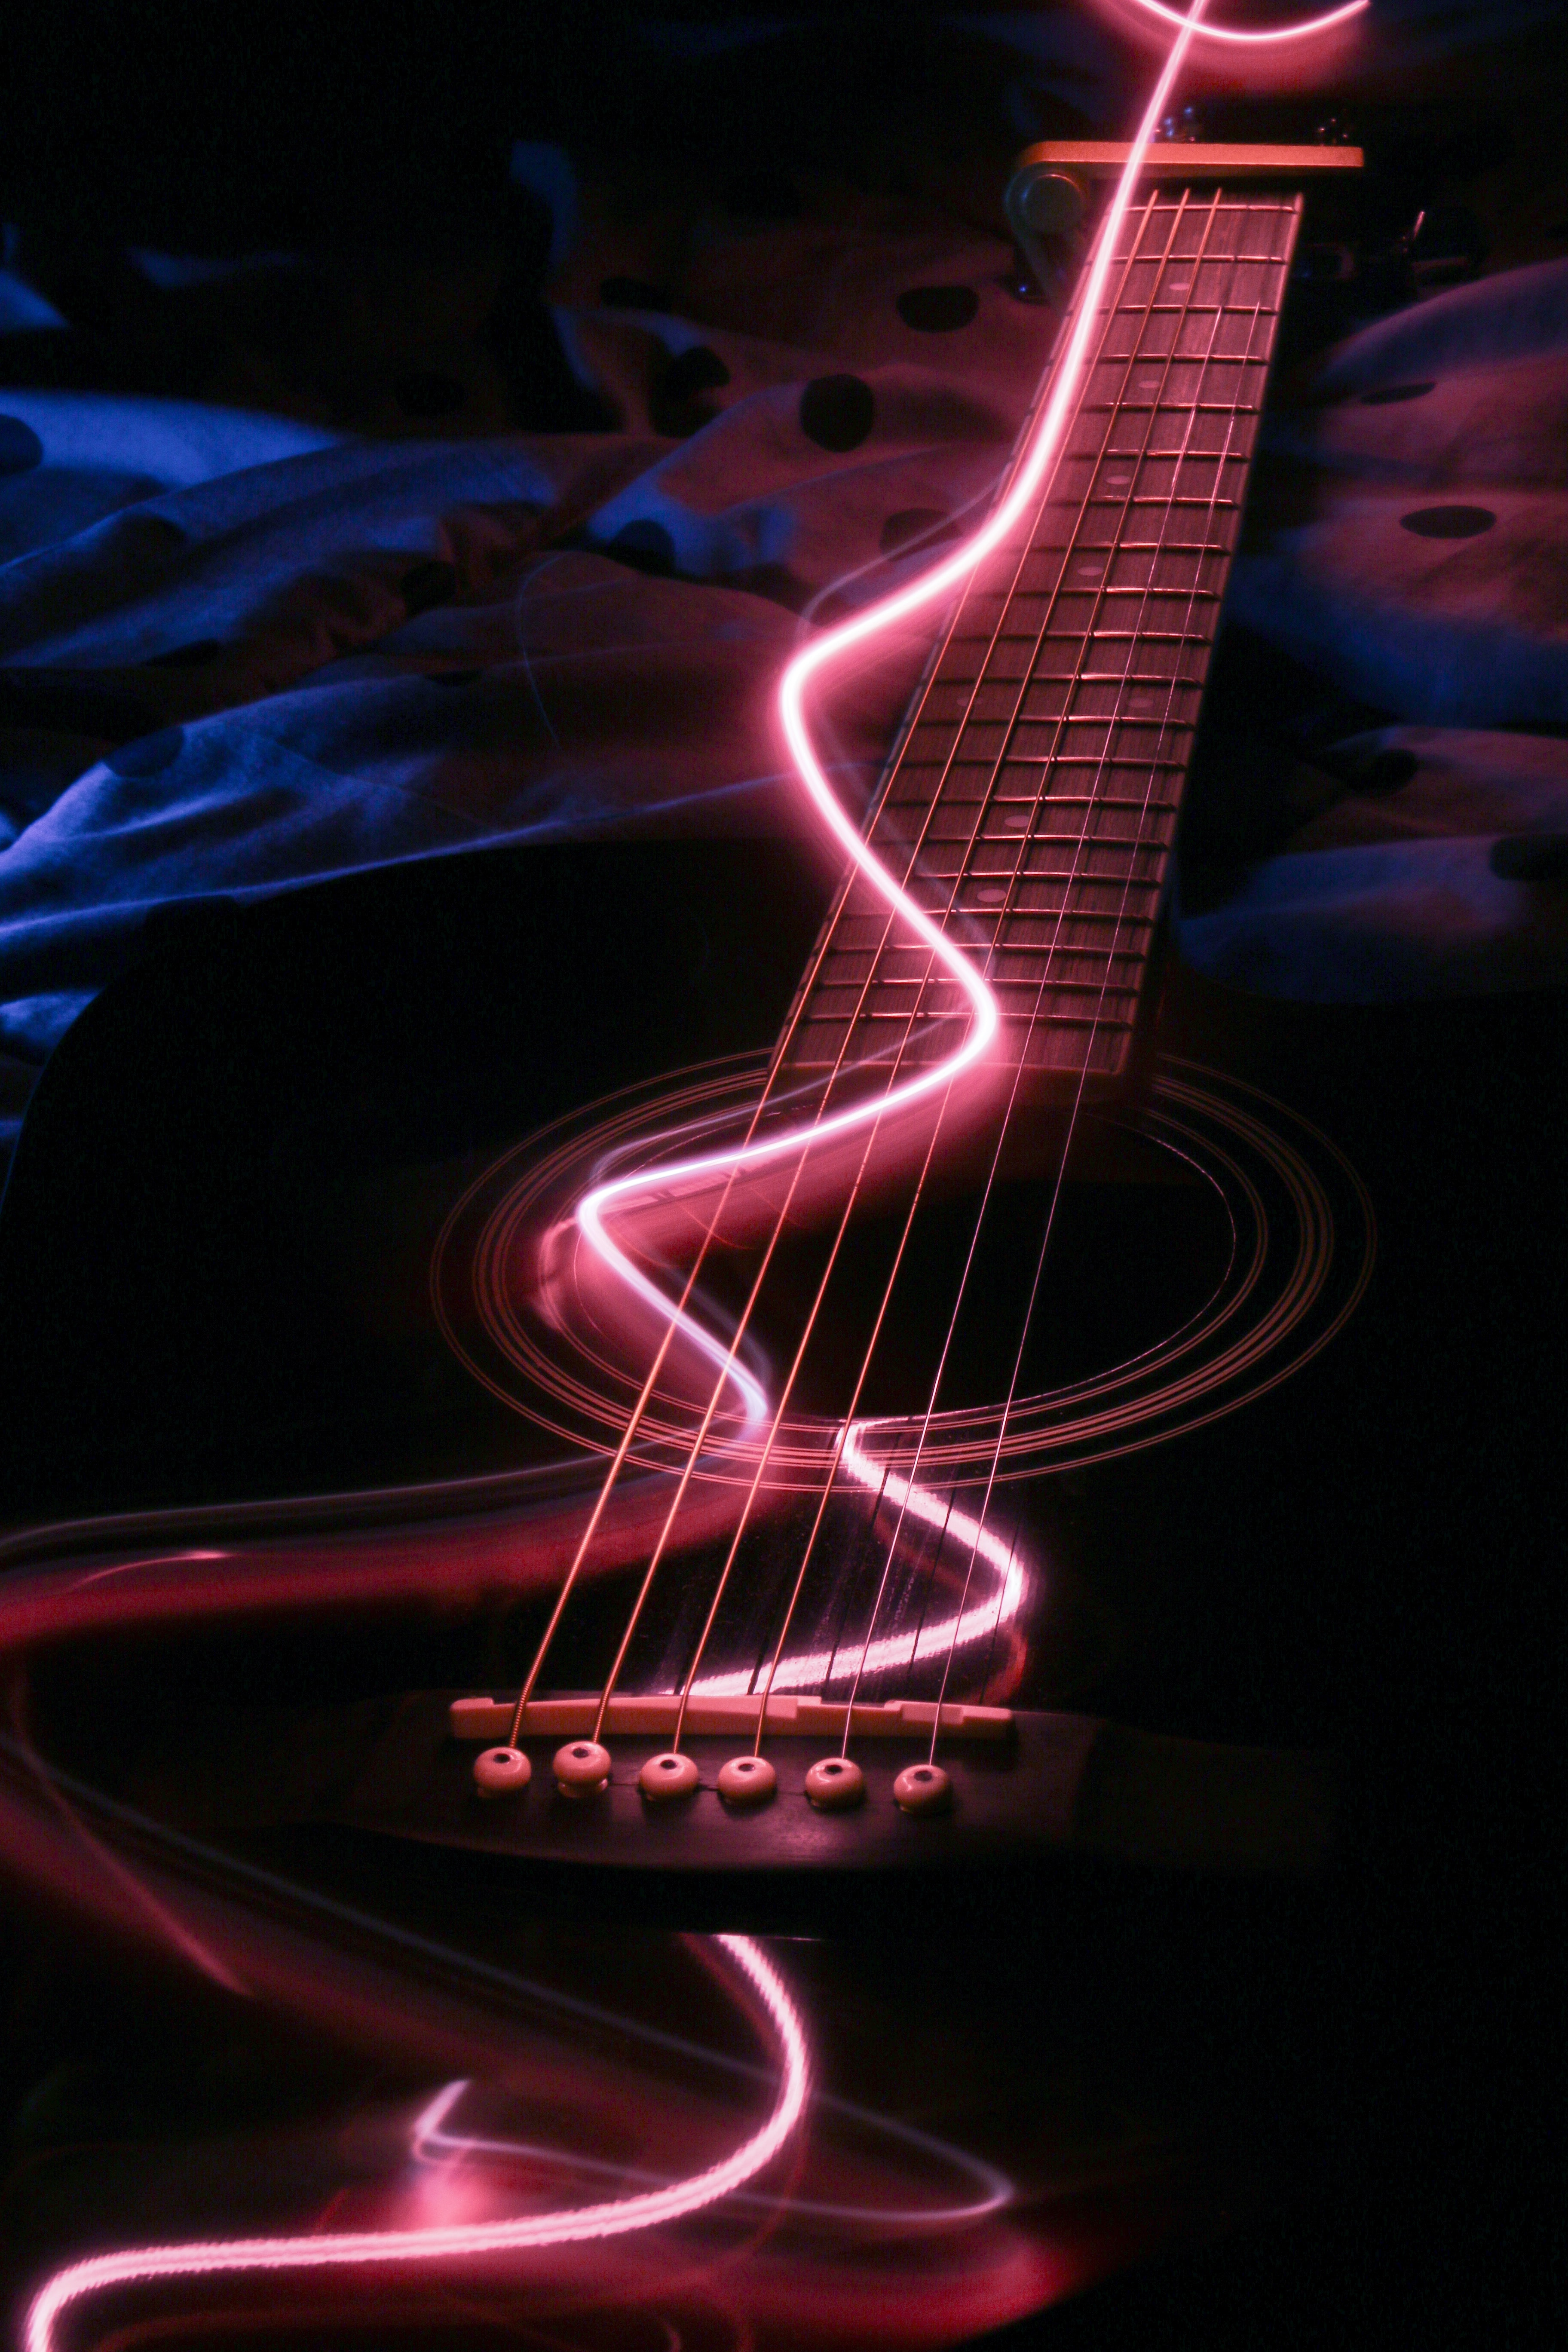 141160 download wallpaper Music, Guitar, Musical Instrument, Neon, Backlight, Illumination screensavers and pictures for free